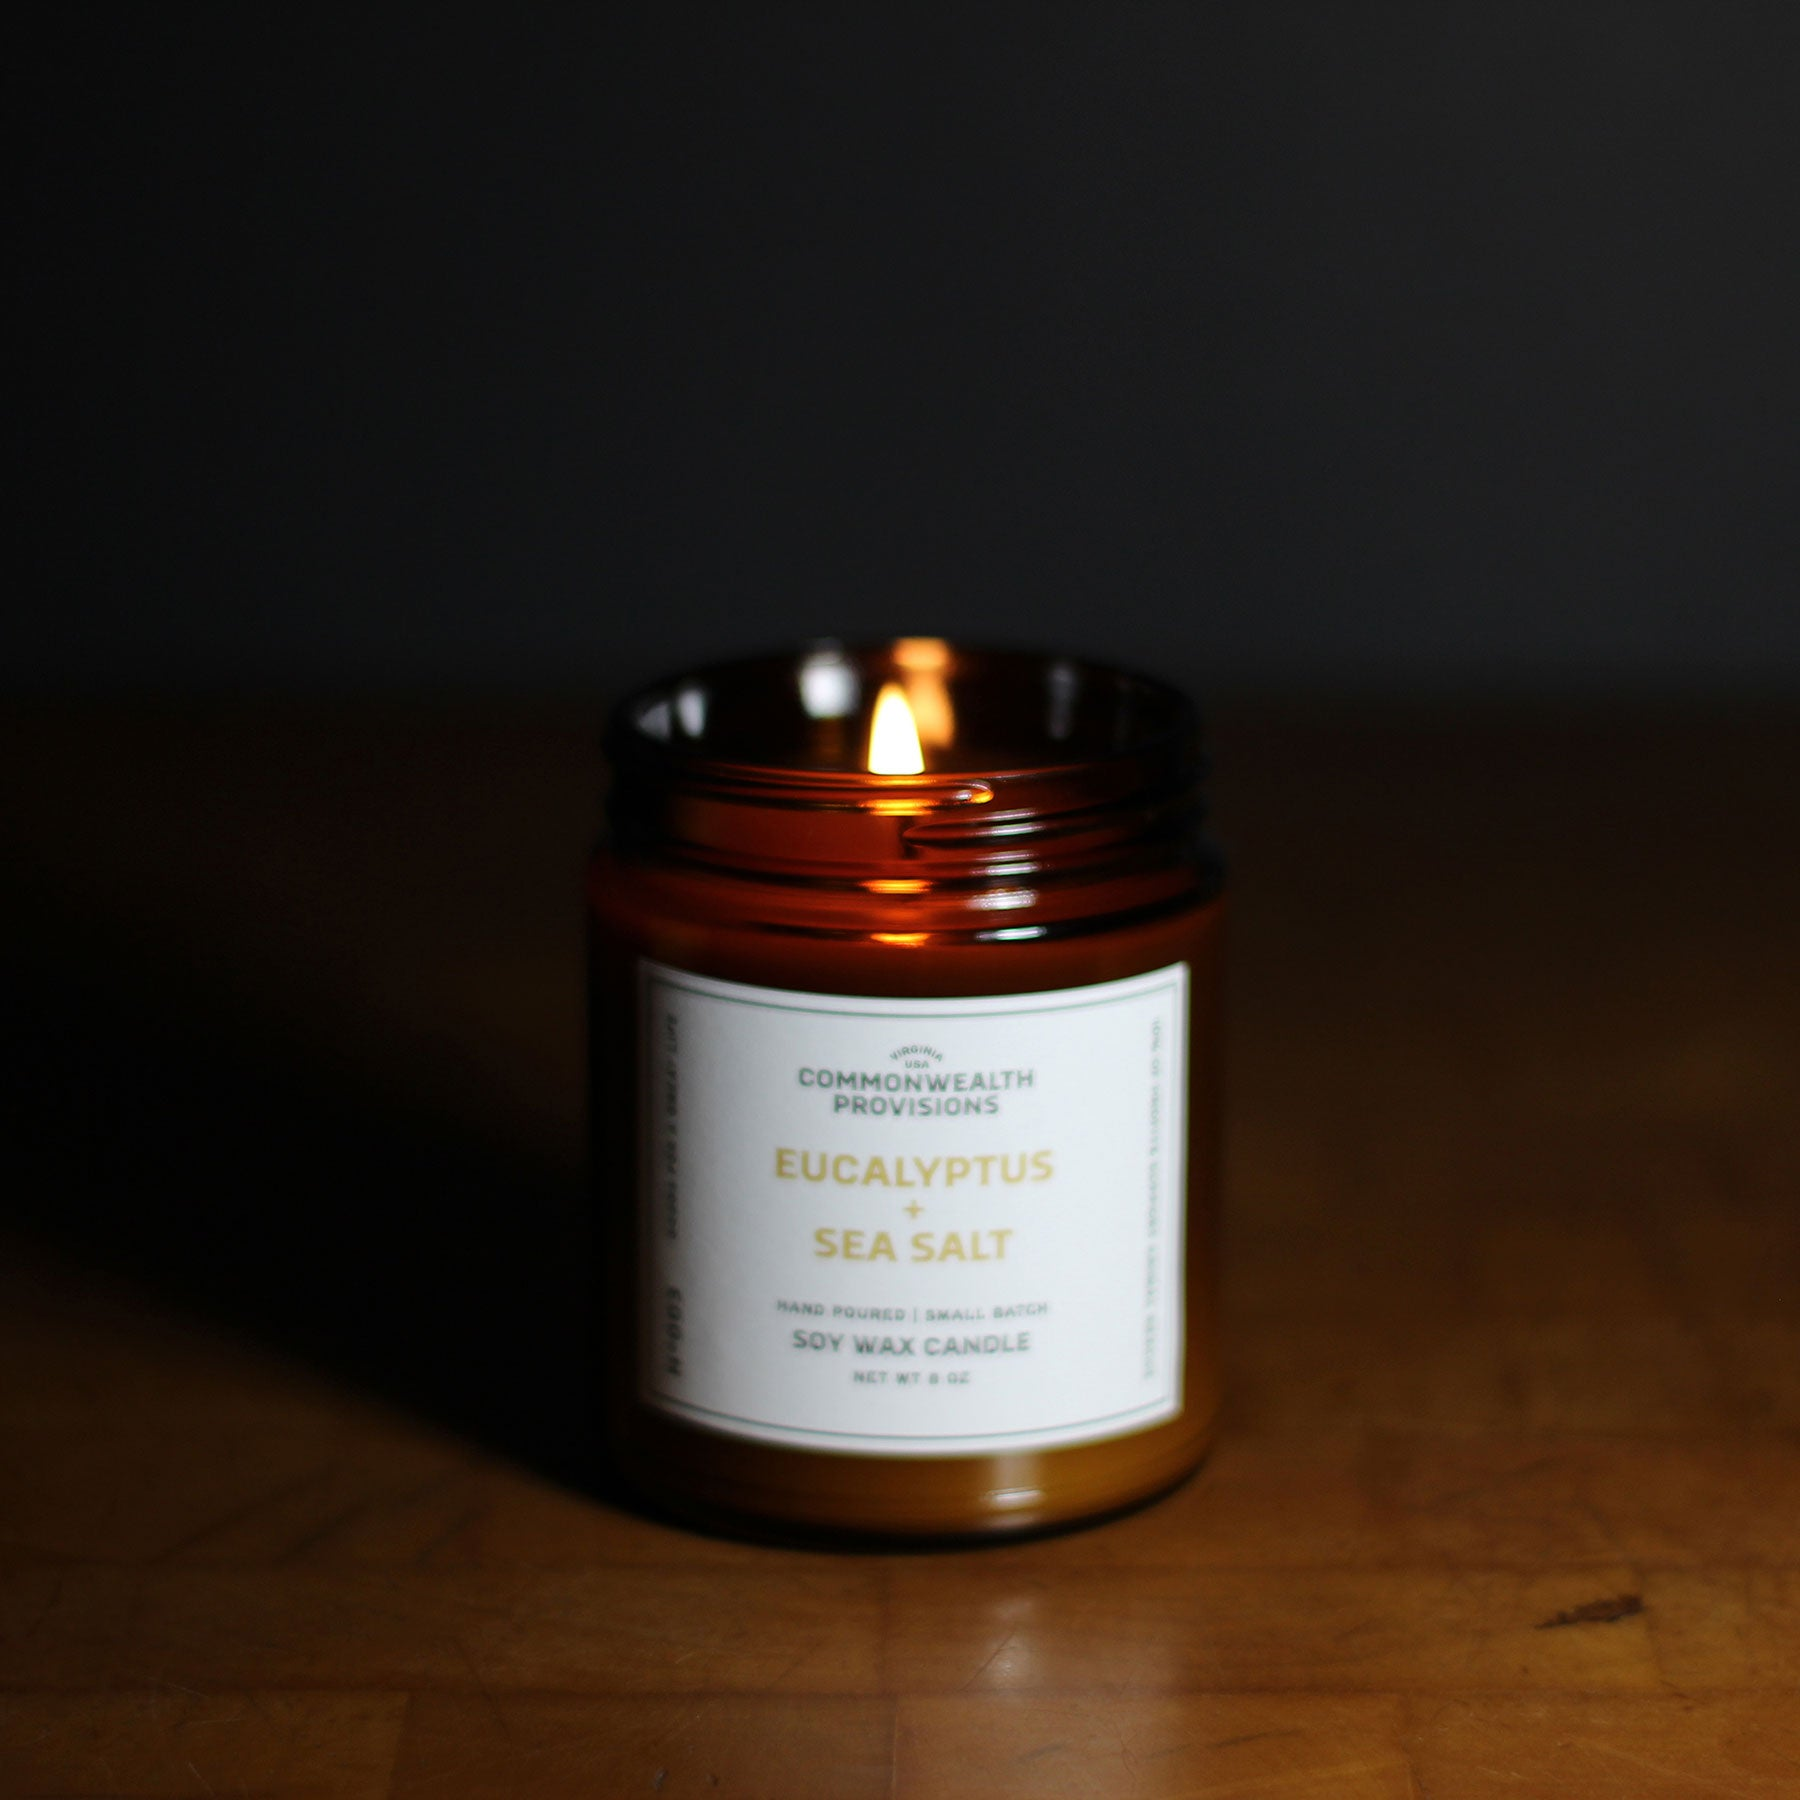 Eucalyptus + Sea Salt Candle